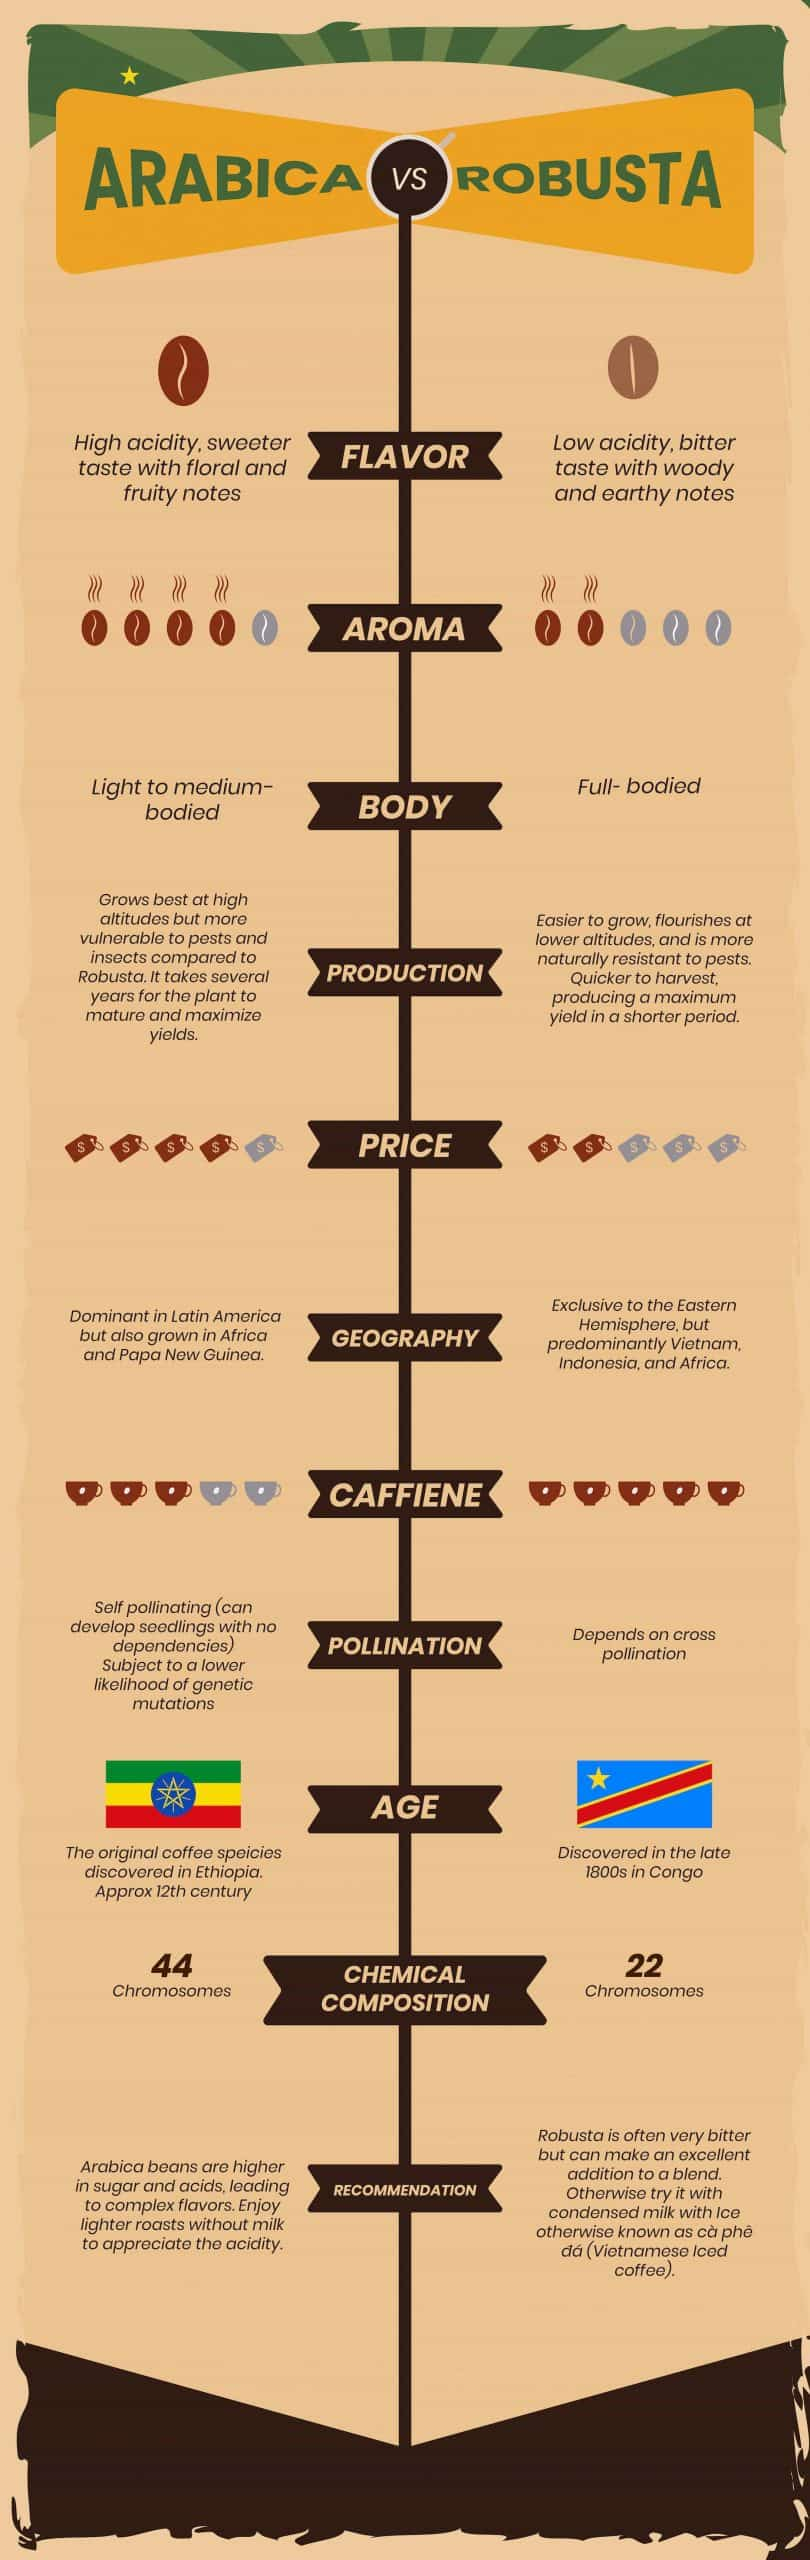 difference between arabica and robusta infographic